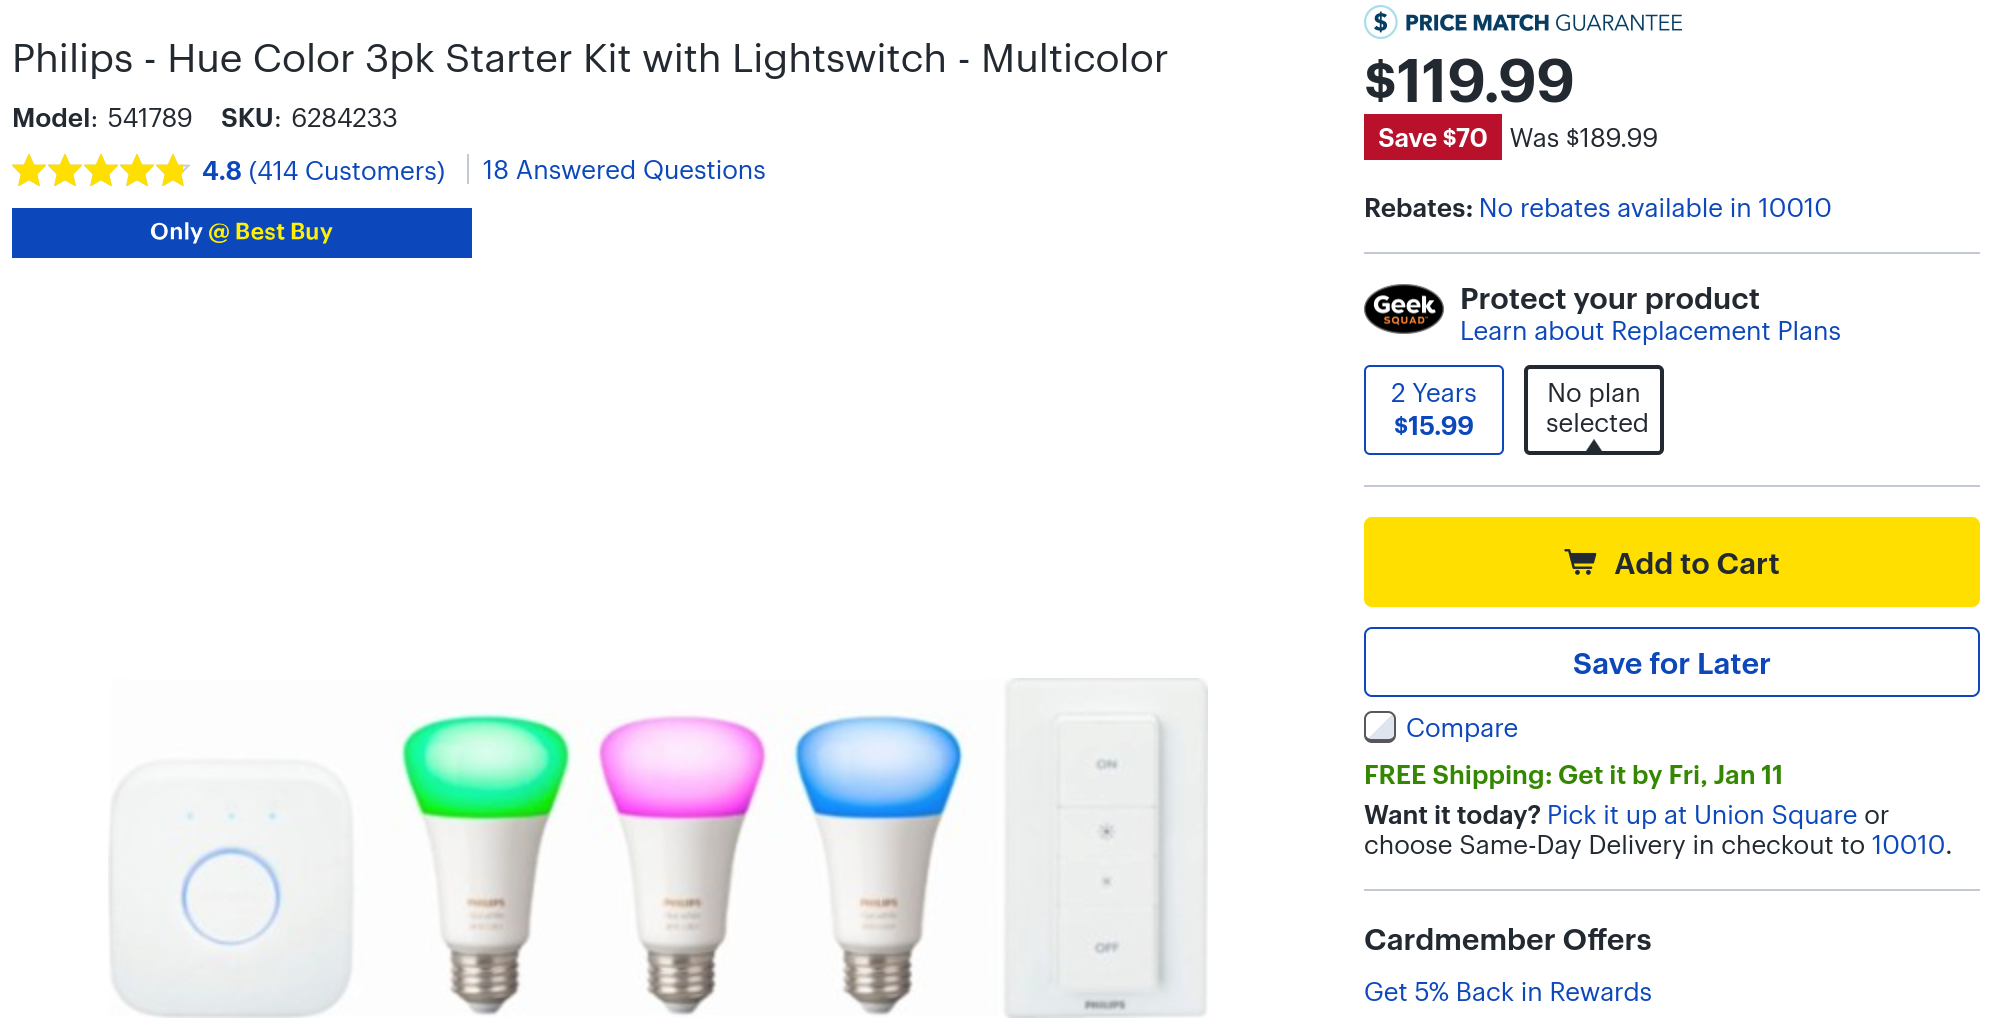 Philips Hue 3-bulb color starter kit is $120 ($70 off) at